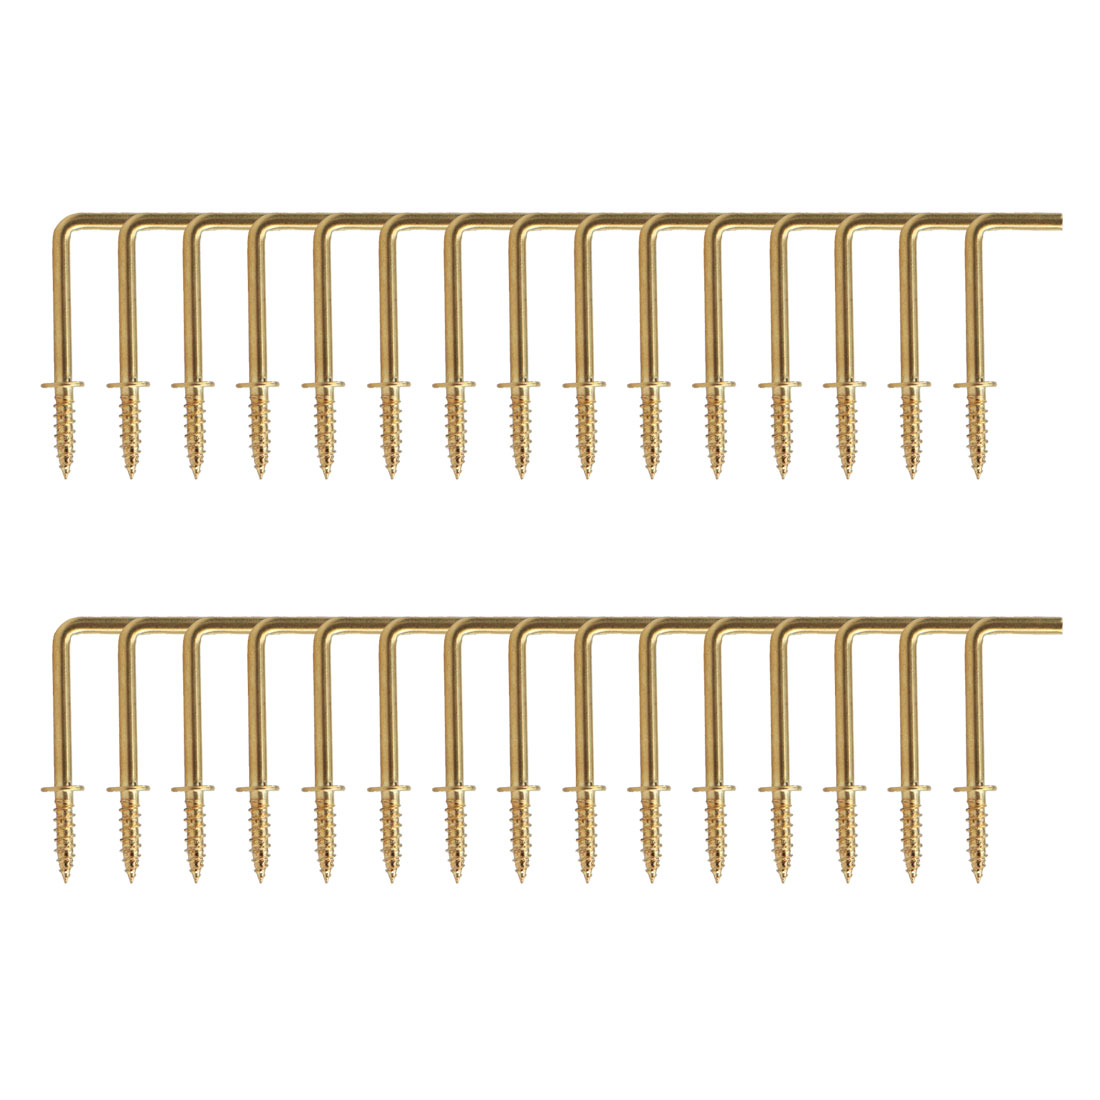 30pcs Cup Square Hook 1 Inch Brass Plating Coated Hanger Holder Gold Tone